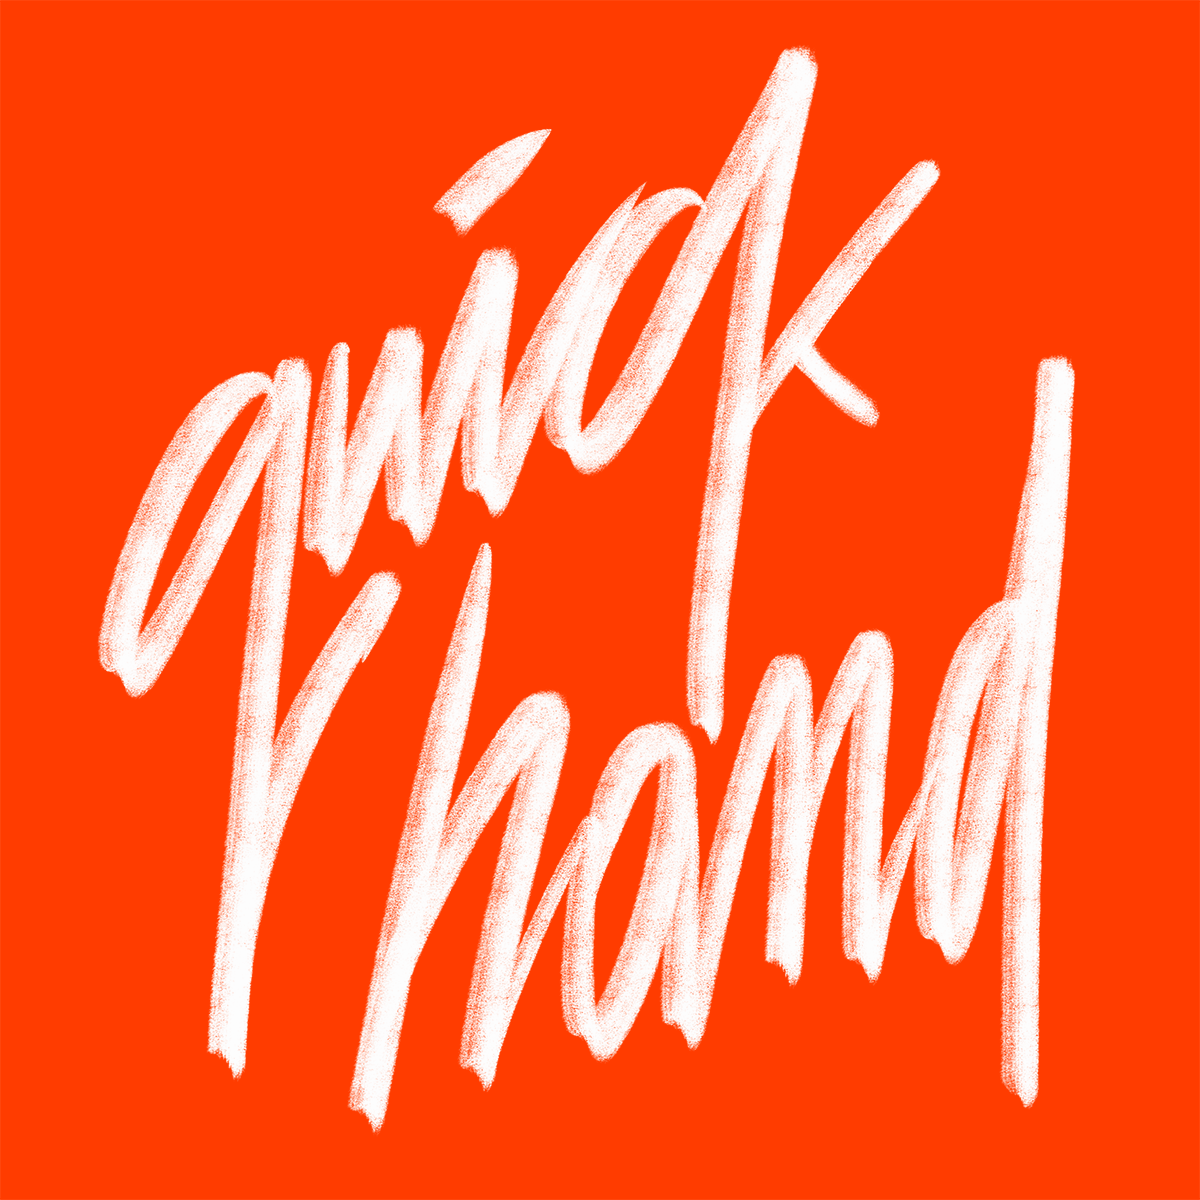 Quick Hand Brush by Typeverything.com